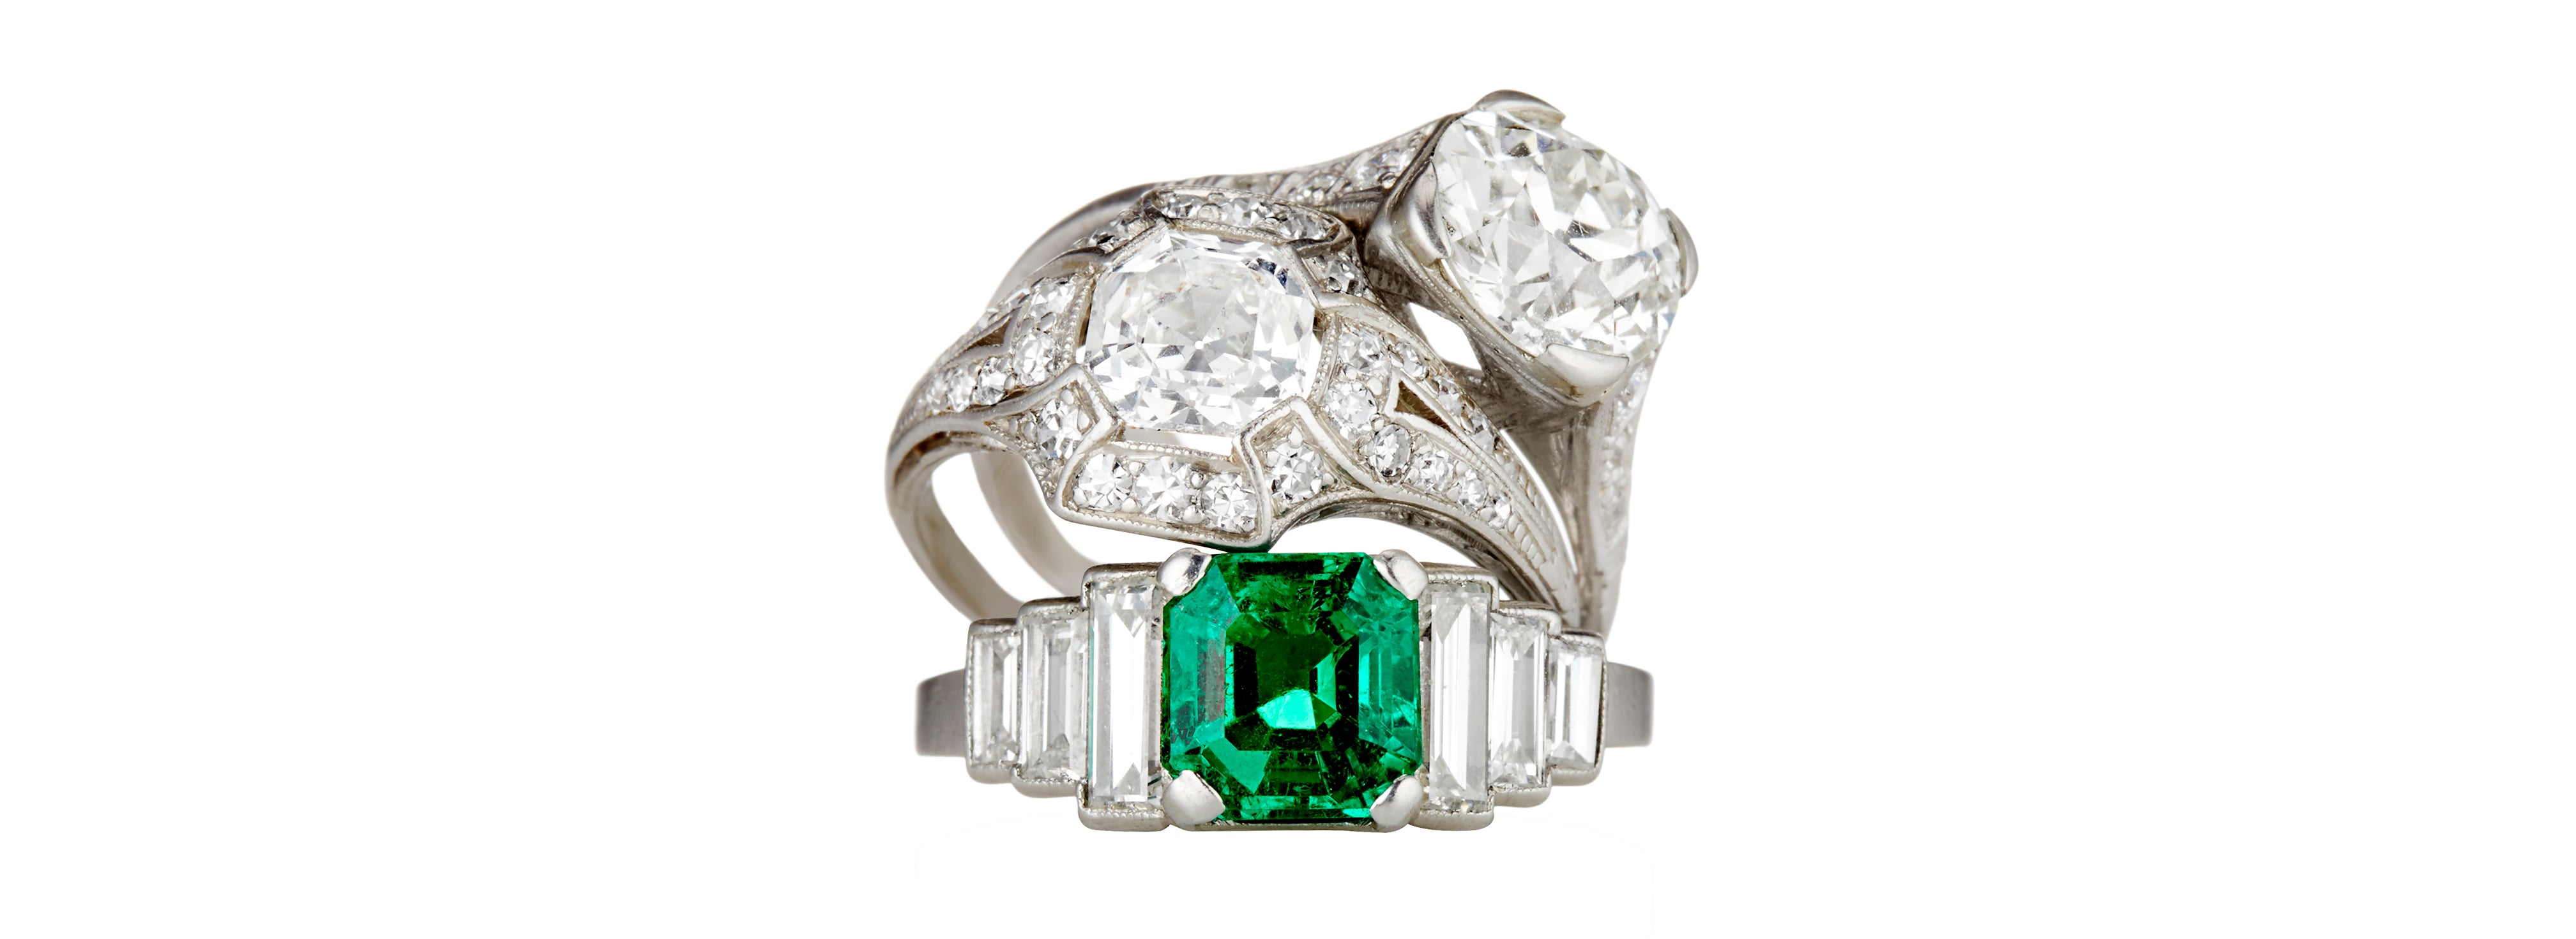 products ring antique realreal jewellery the art engagement deco rings jewelry diamond enlarged